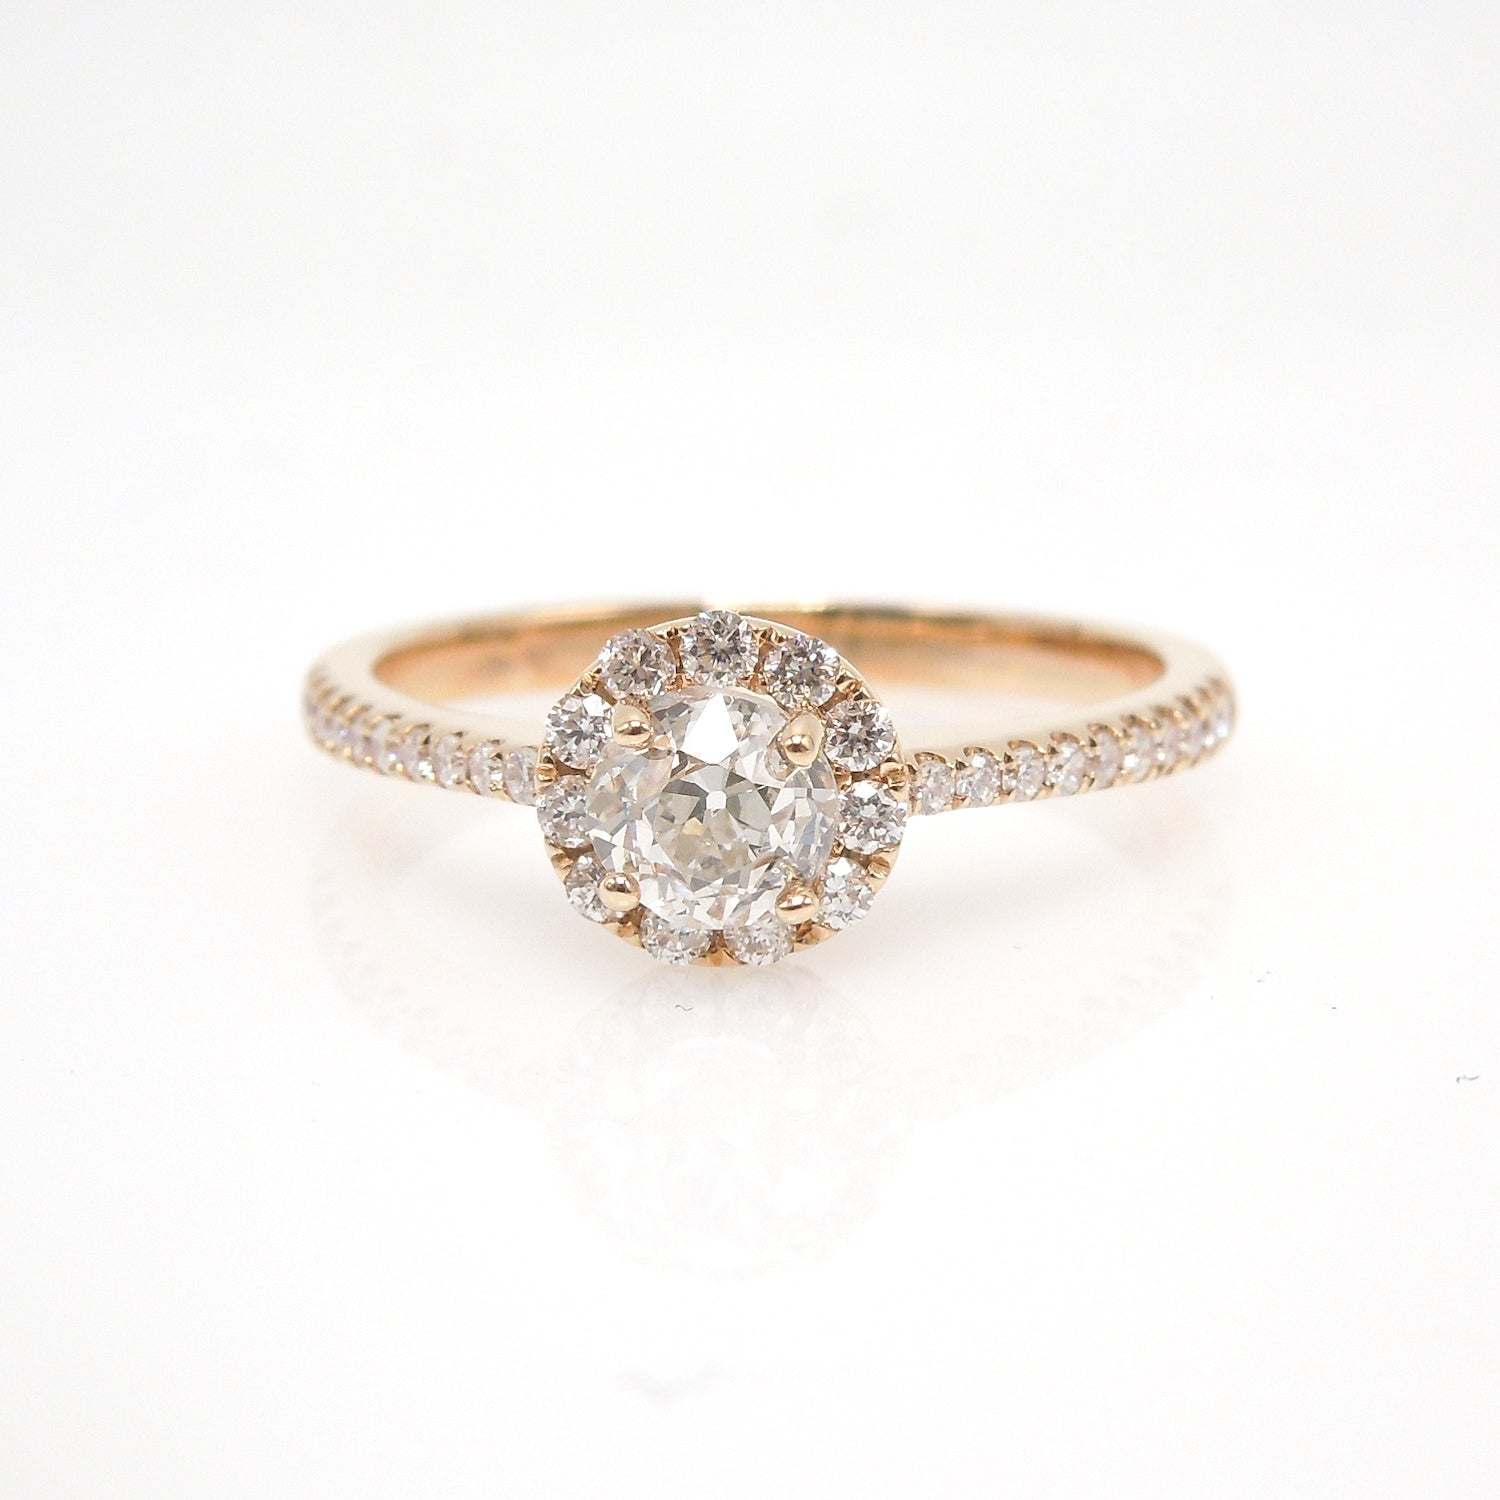 Half Carat Old European Cut Diamond in Modern Diamond Halo Mounting - 18K Rose Gold